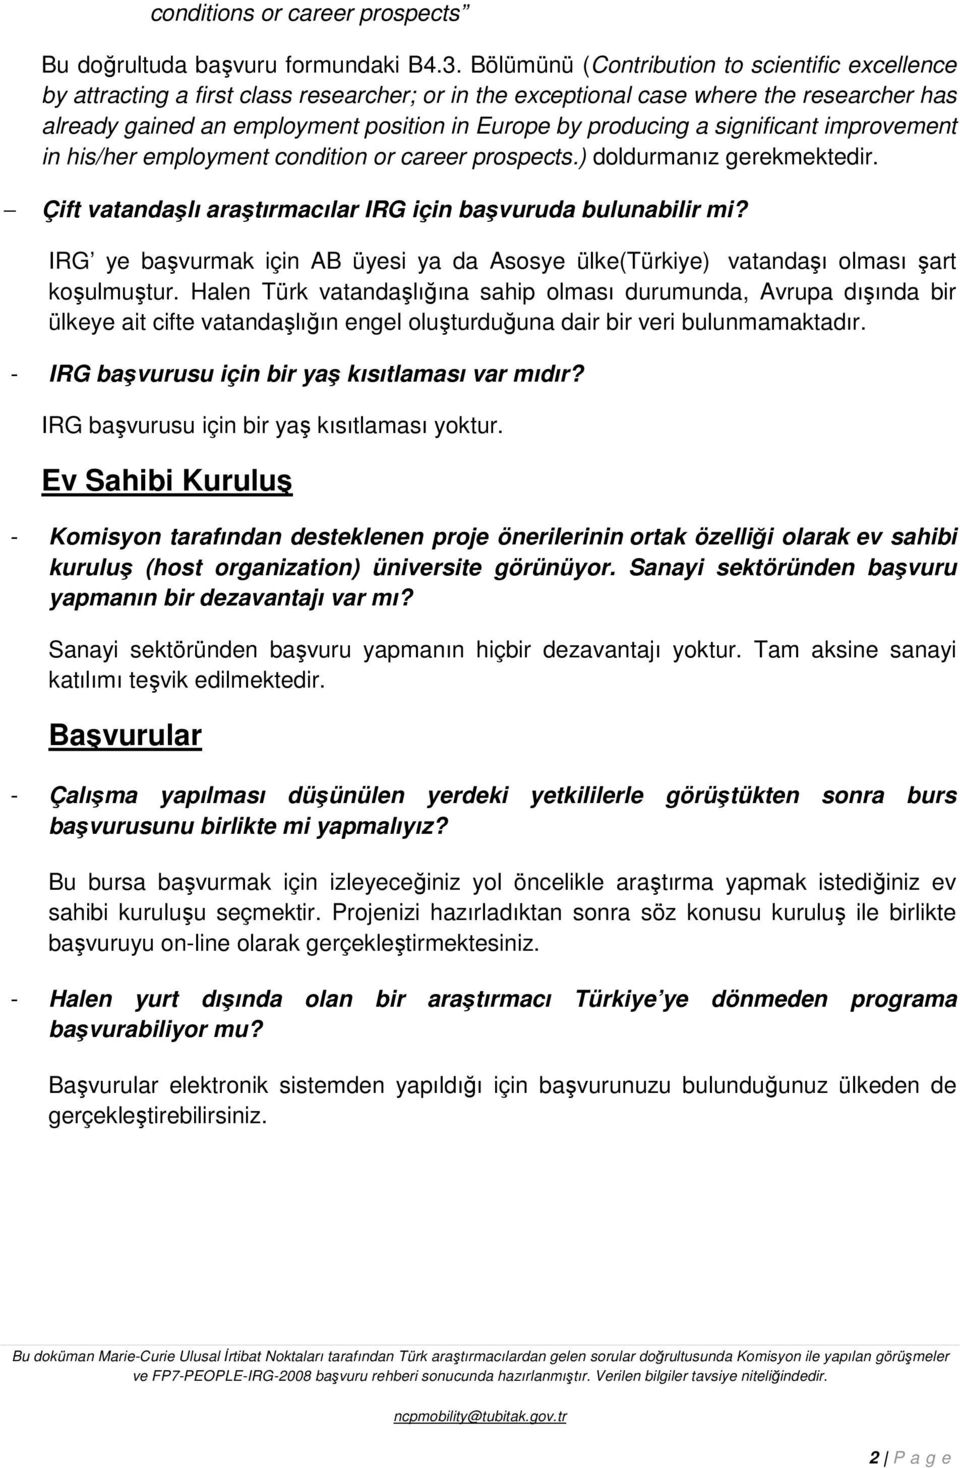 producing a significant improvement in his/her employment condition or career prospects.) doldurmanız gerekmektedir. Çift vatandaşlı araştırmacılar IRG için başvuruda bulunabilir mi?